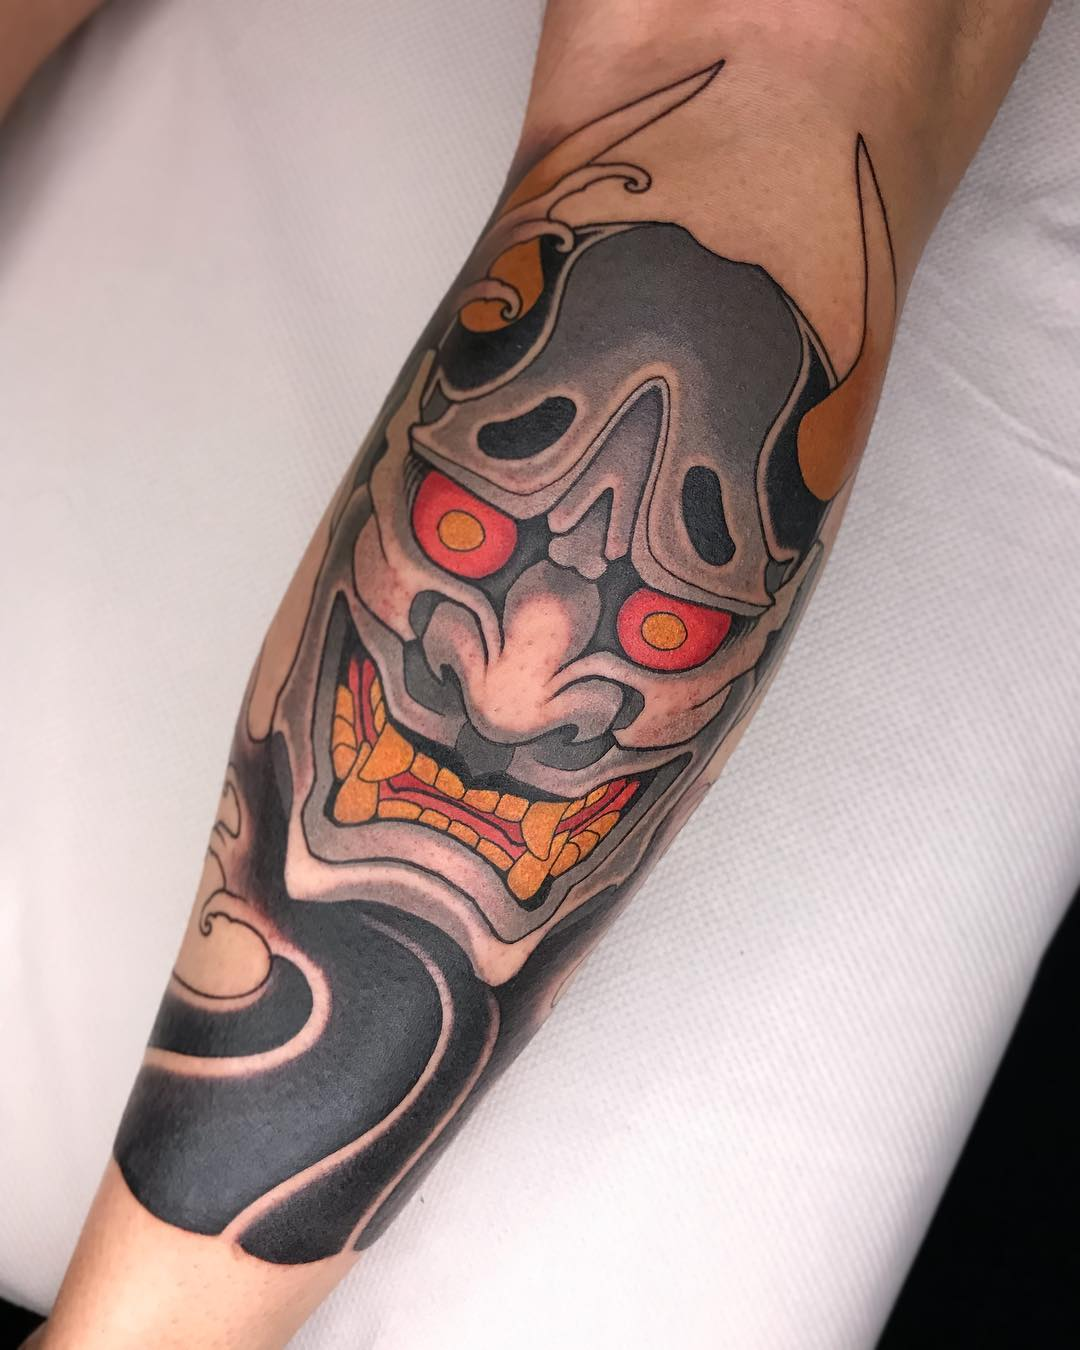 davide di cintio tattoo artist london 12